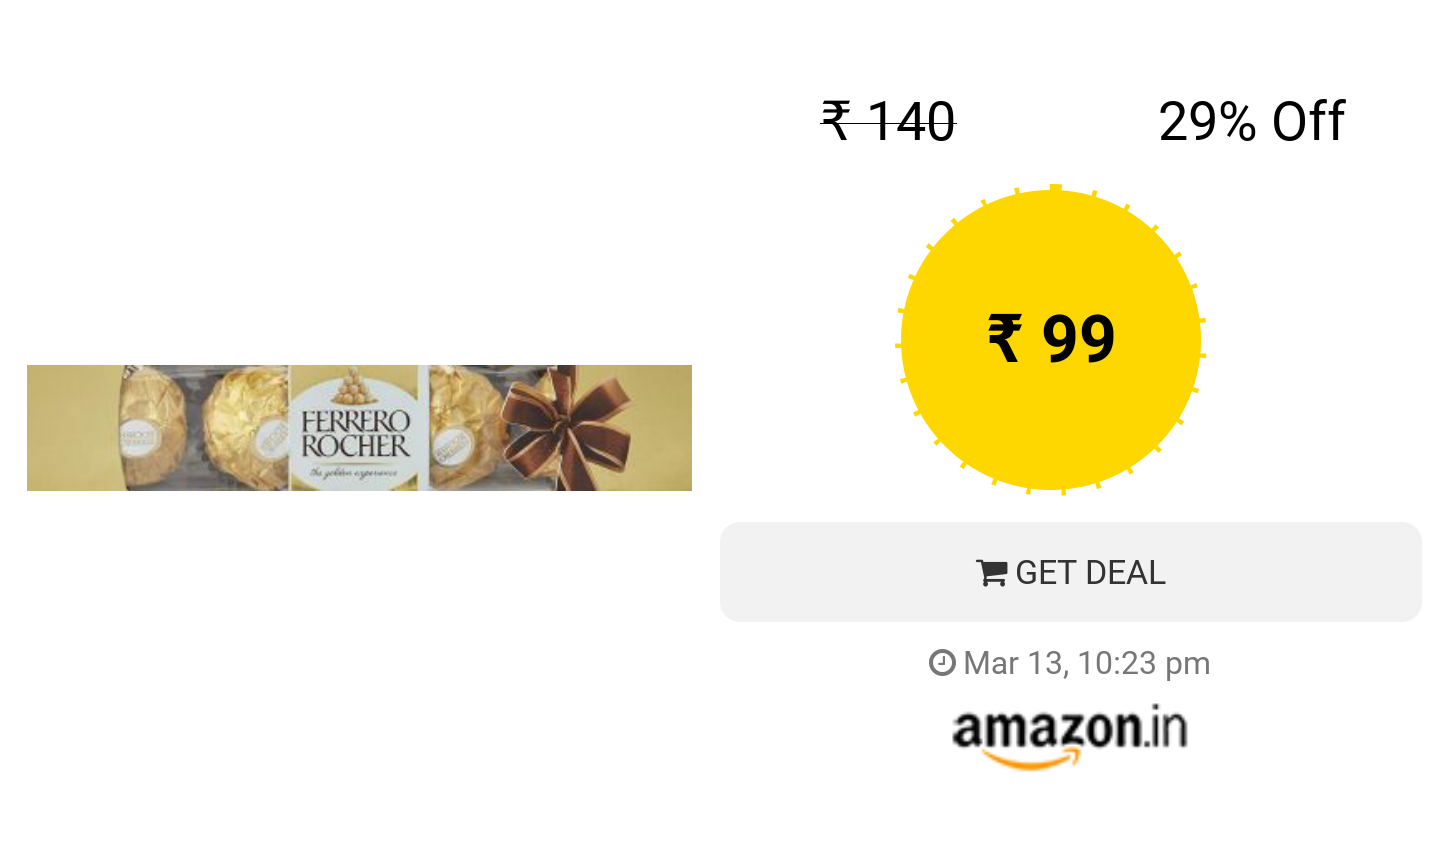 Ferrero Rocher 4 Pieces With Images Ferrero Rocher Deal Online Shopping Stores